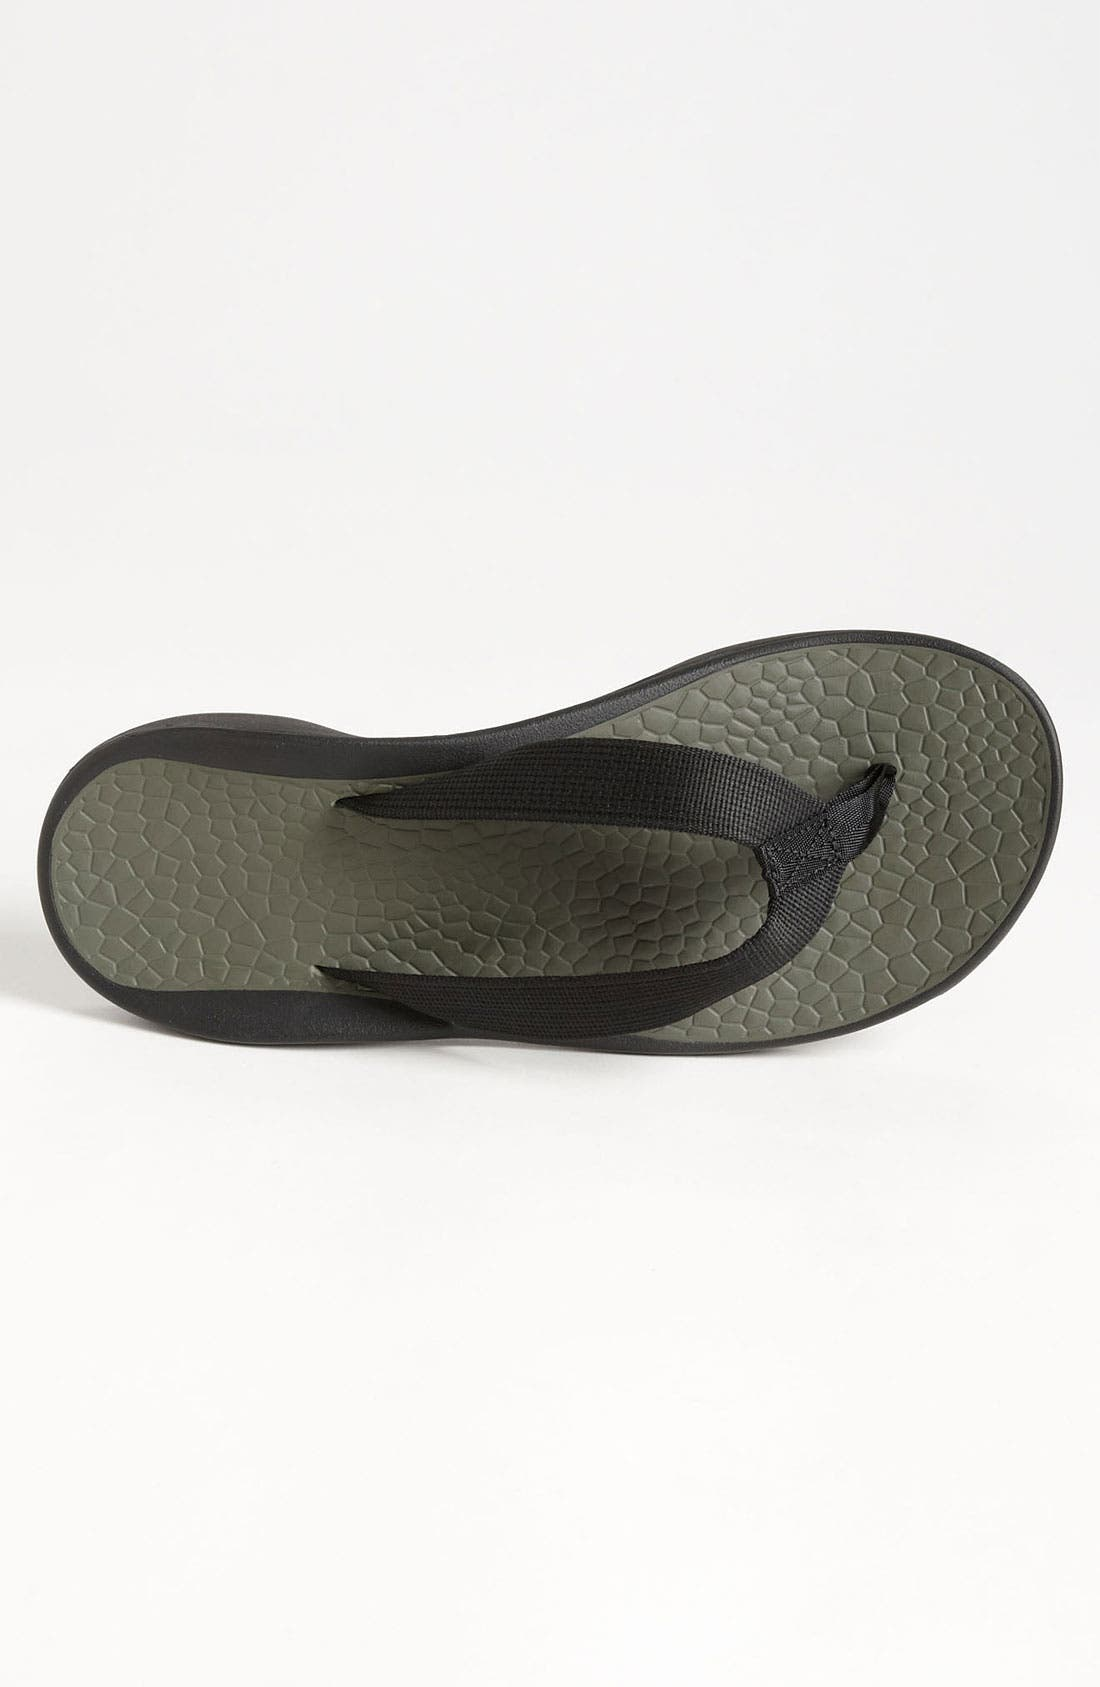 Alternate Image 3  - Chaco 'Fathom' Flip Flop (Men)